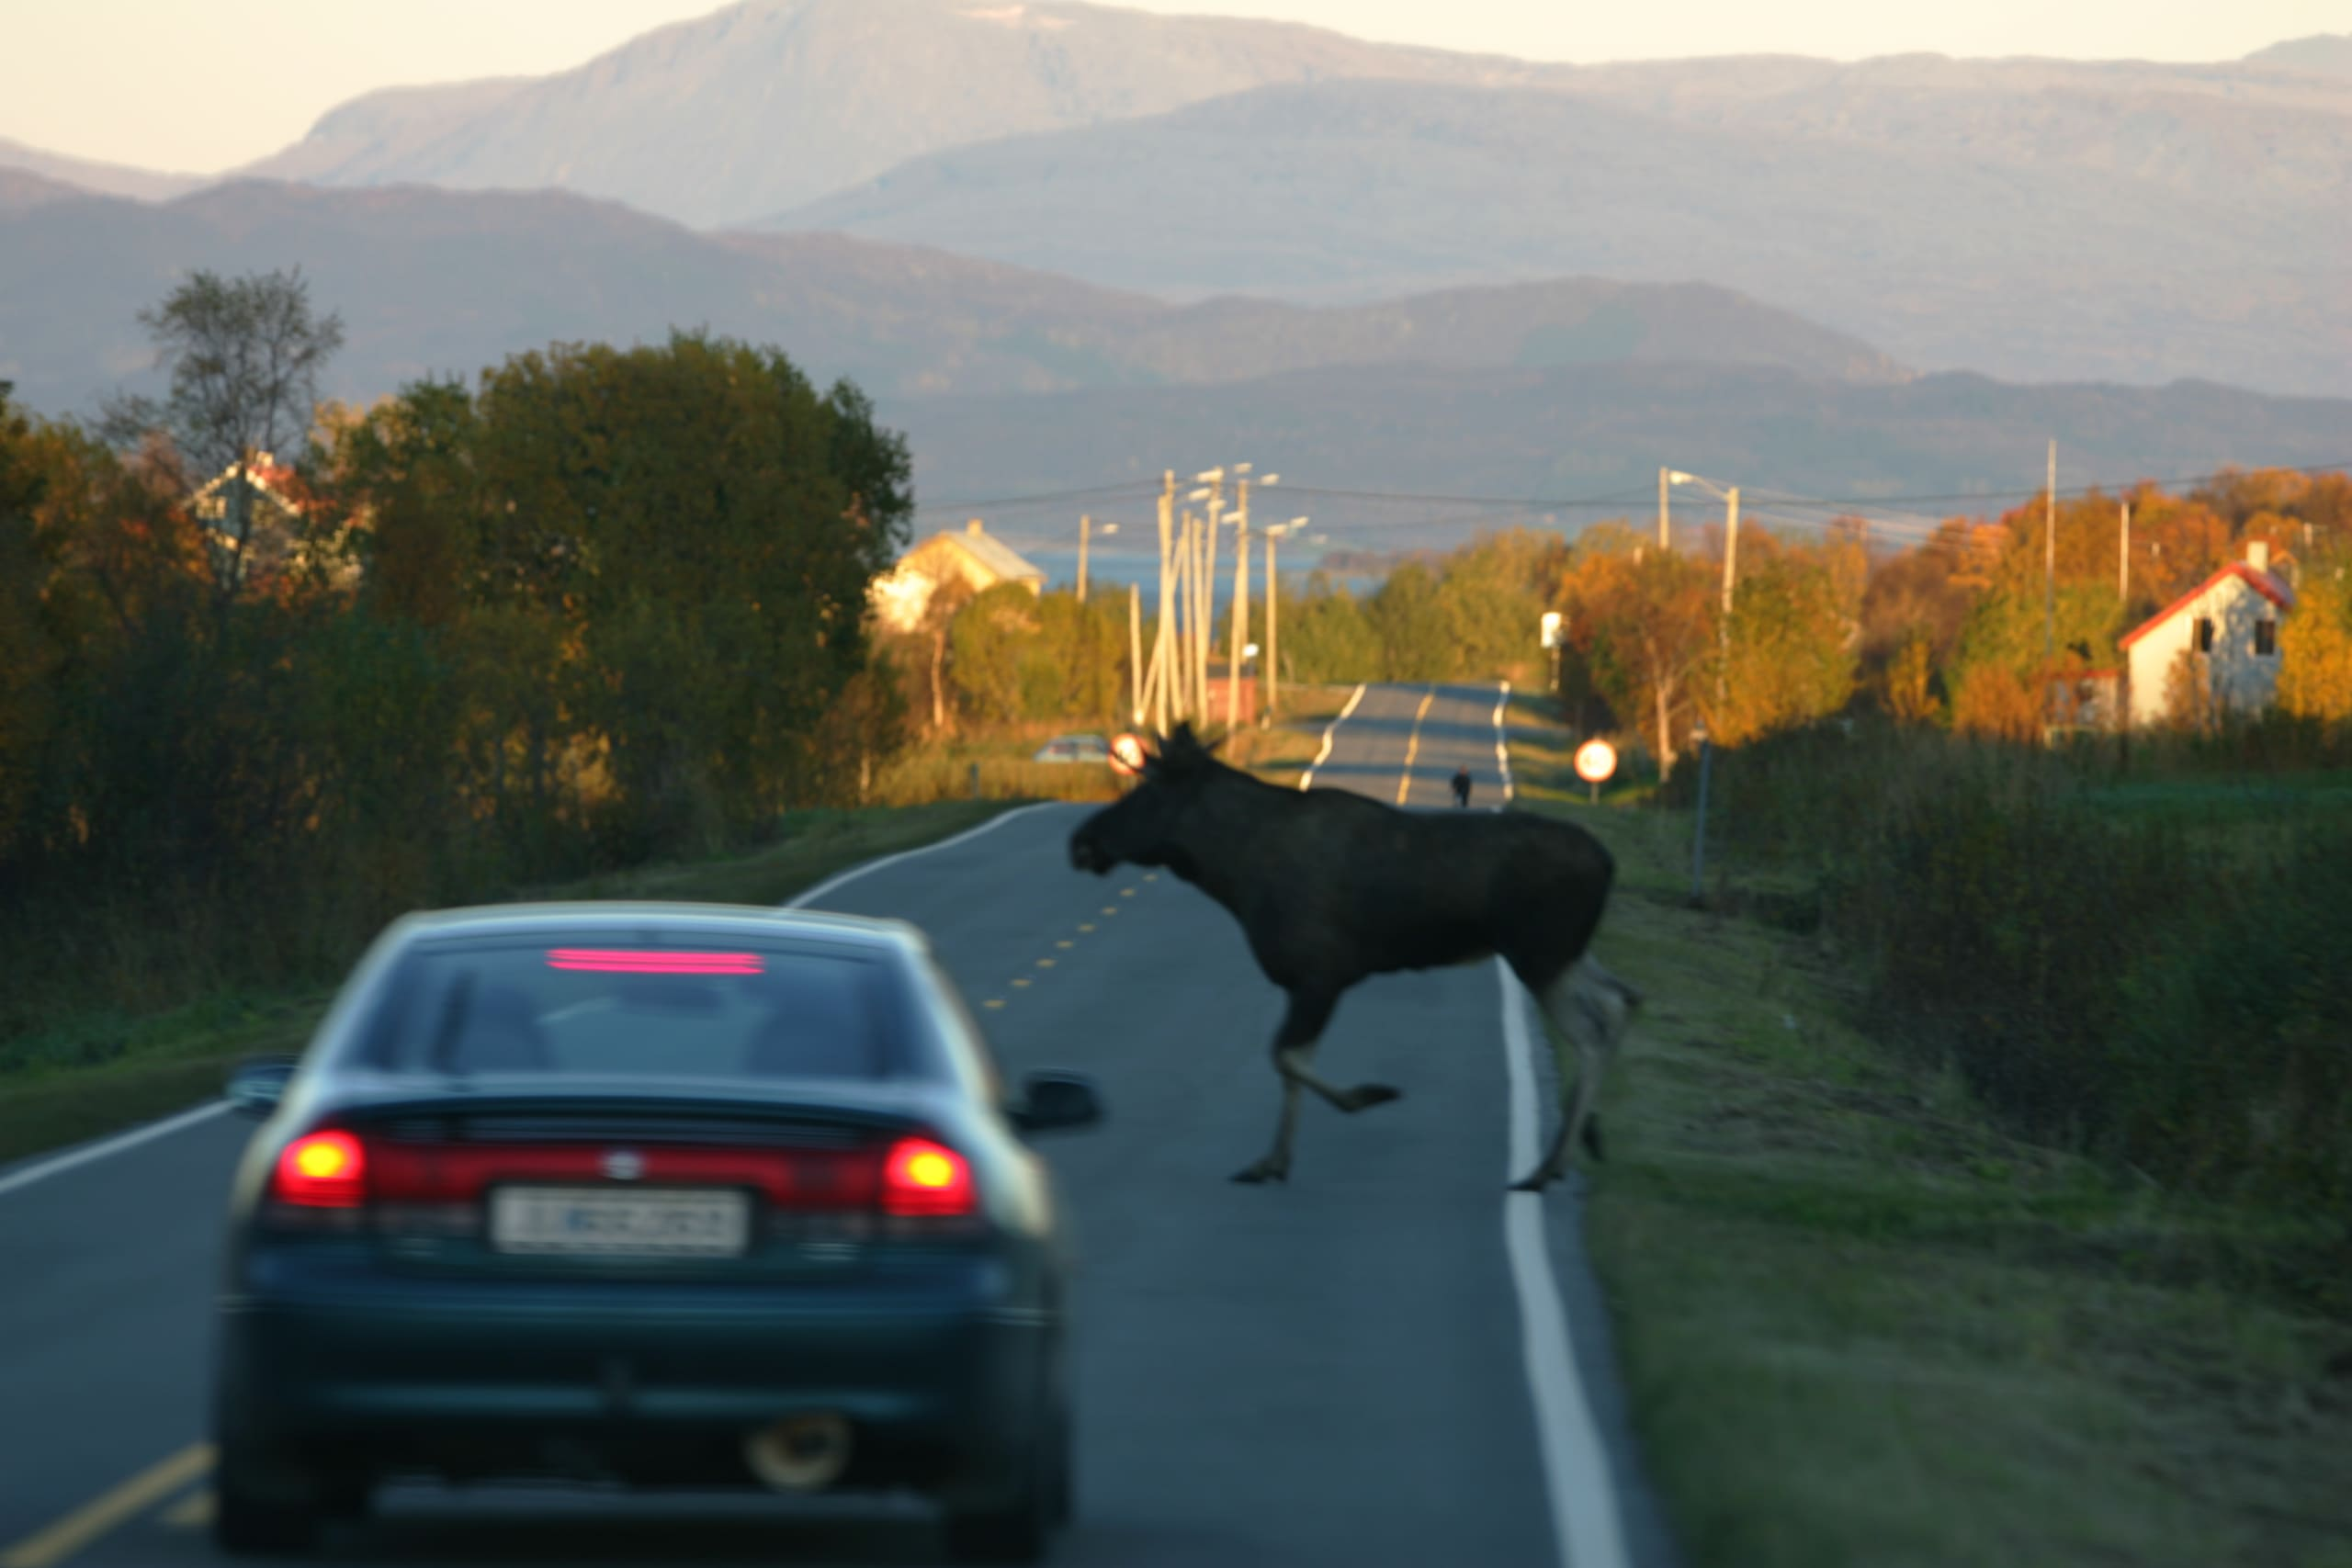 Moose runs across the road in front of car